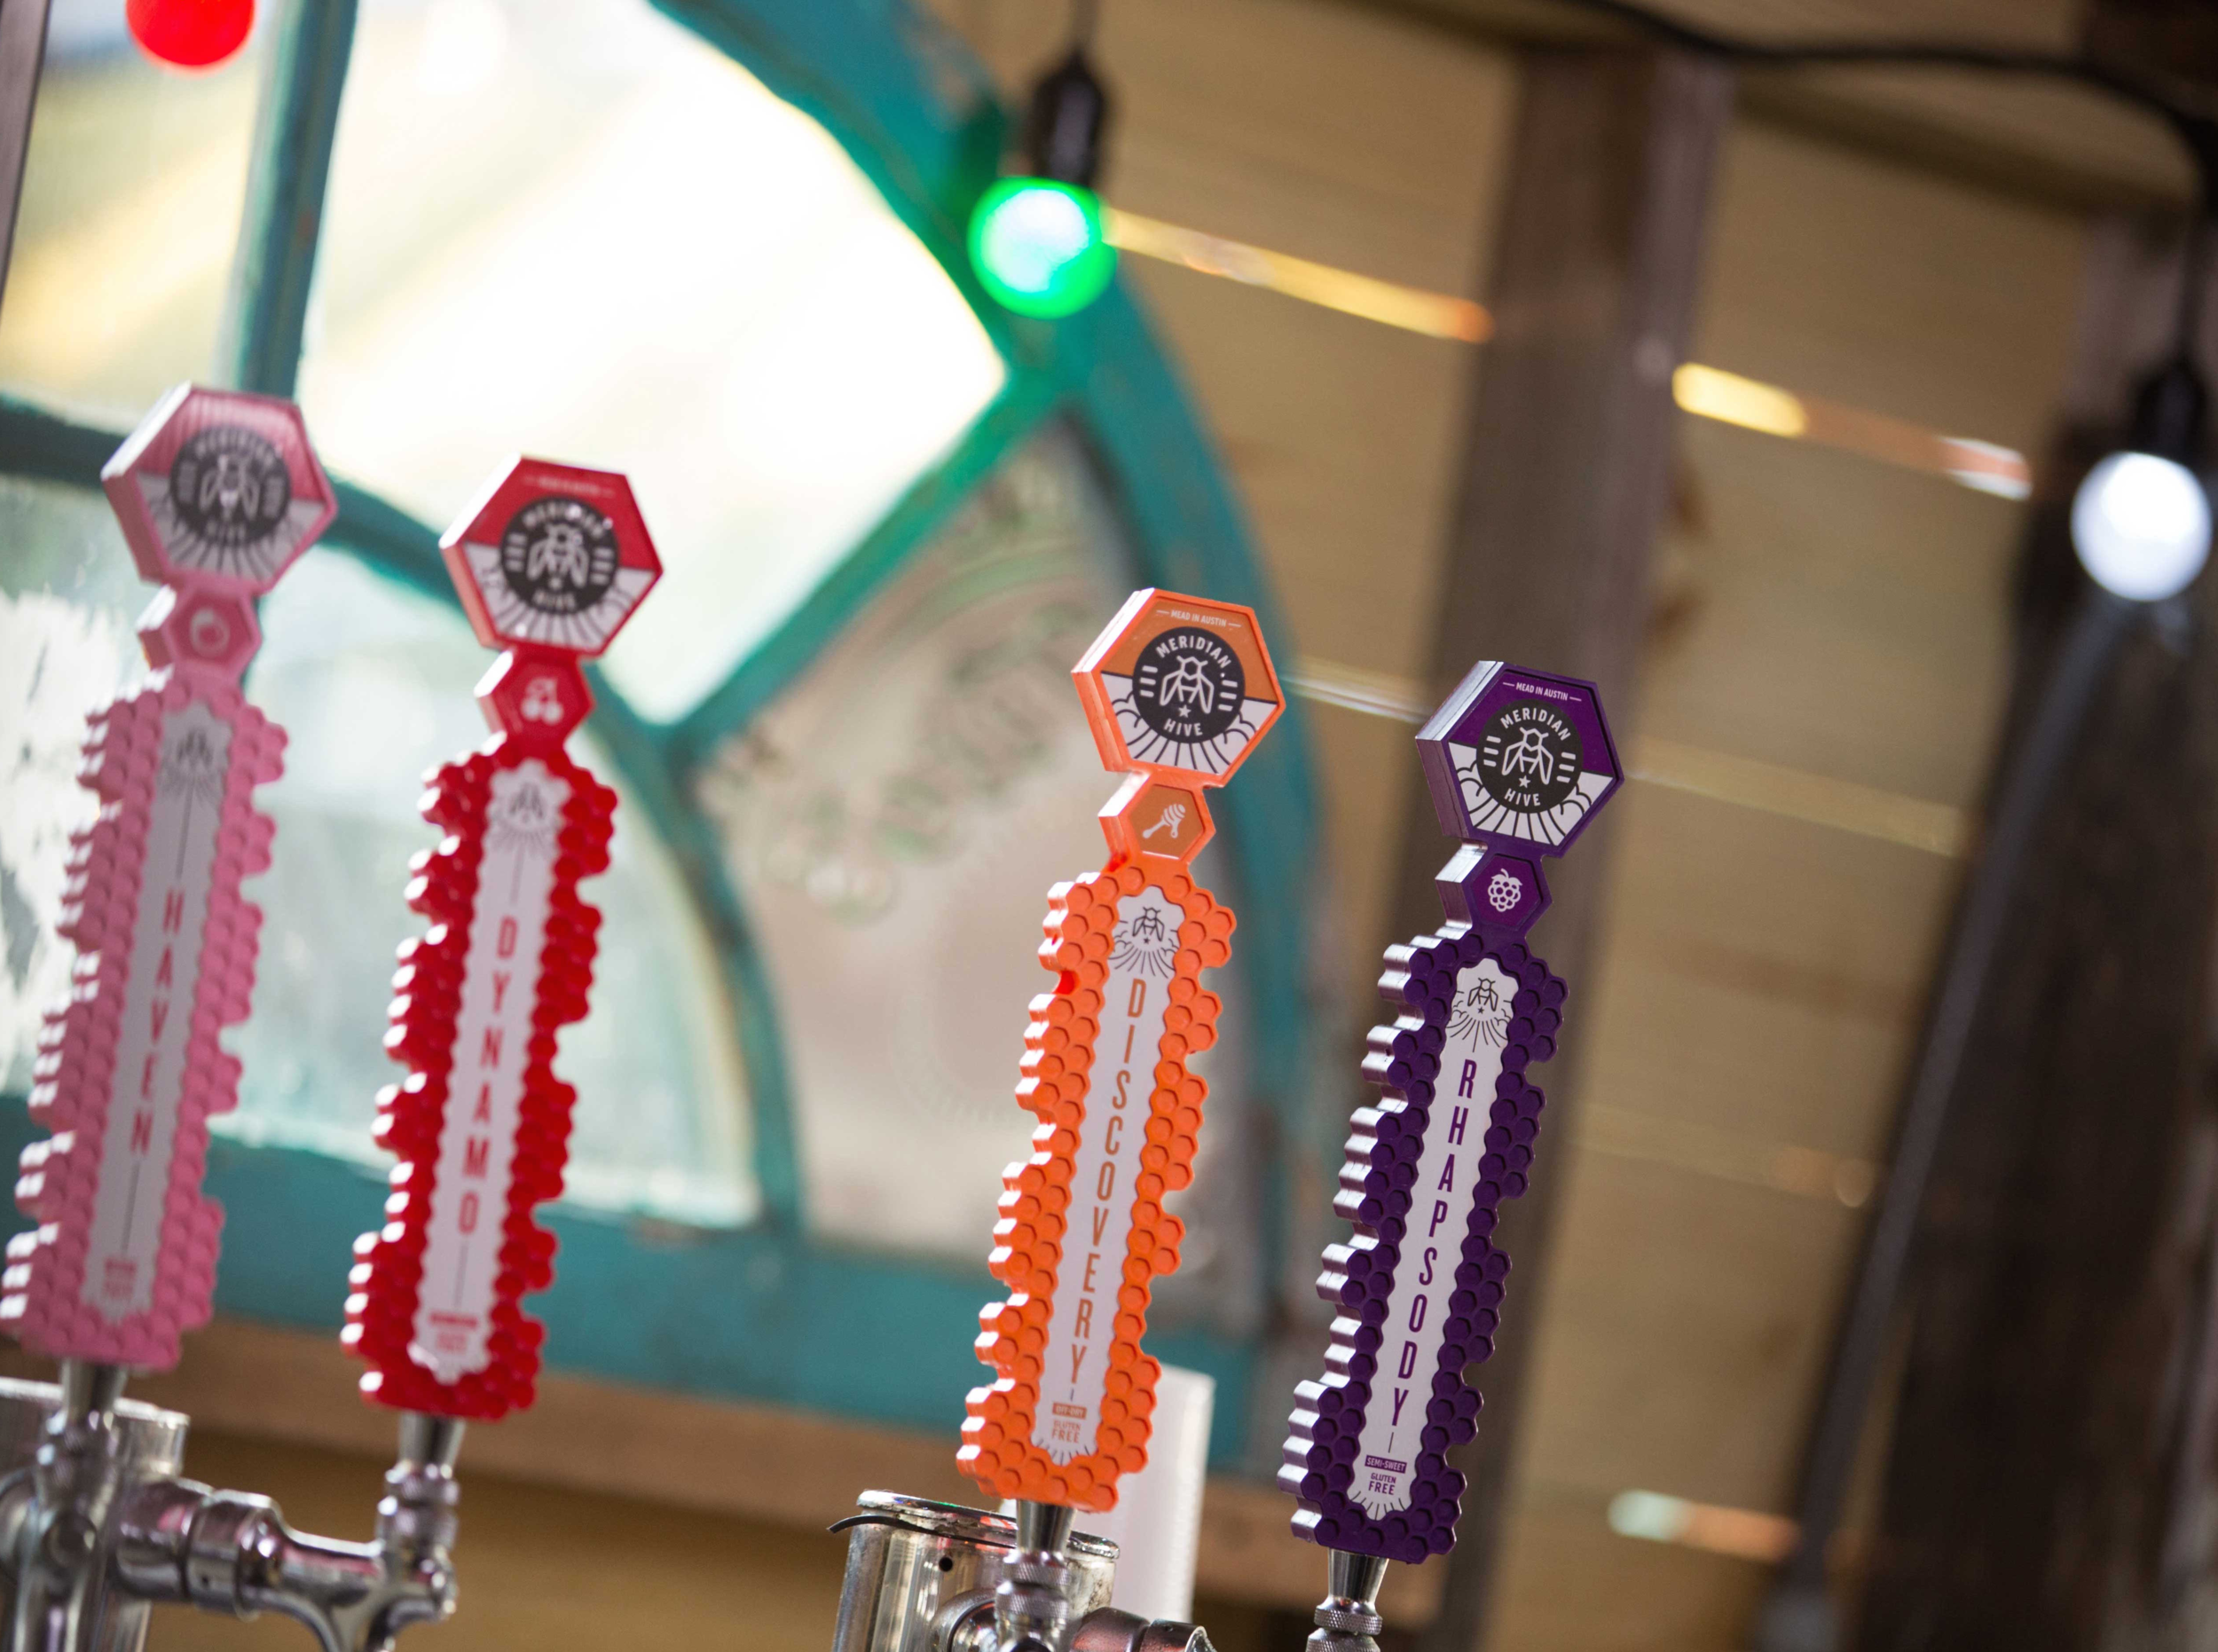 Tap Handles with arched window